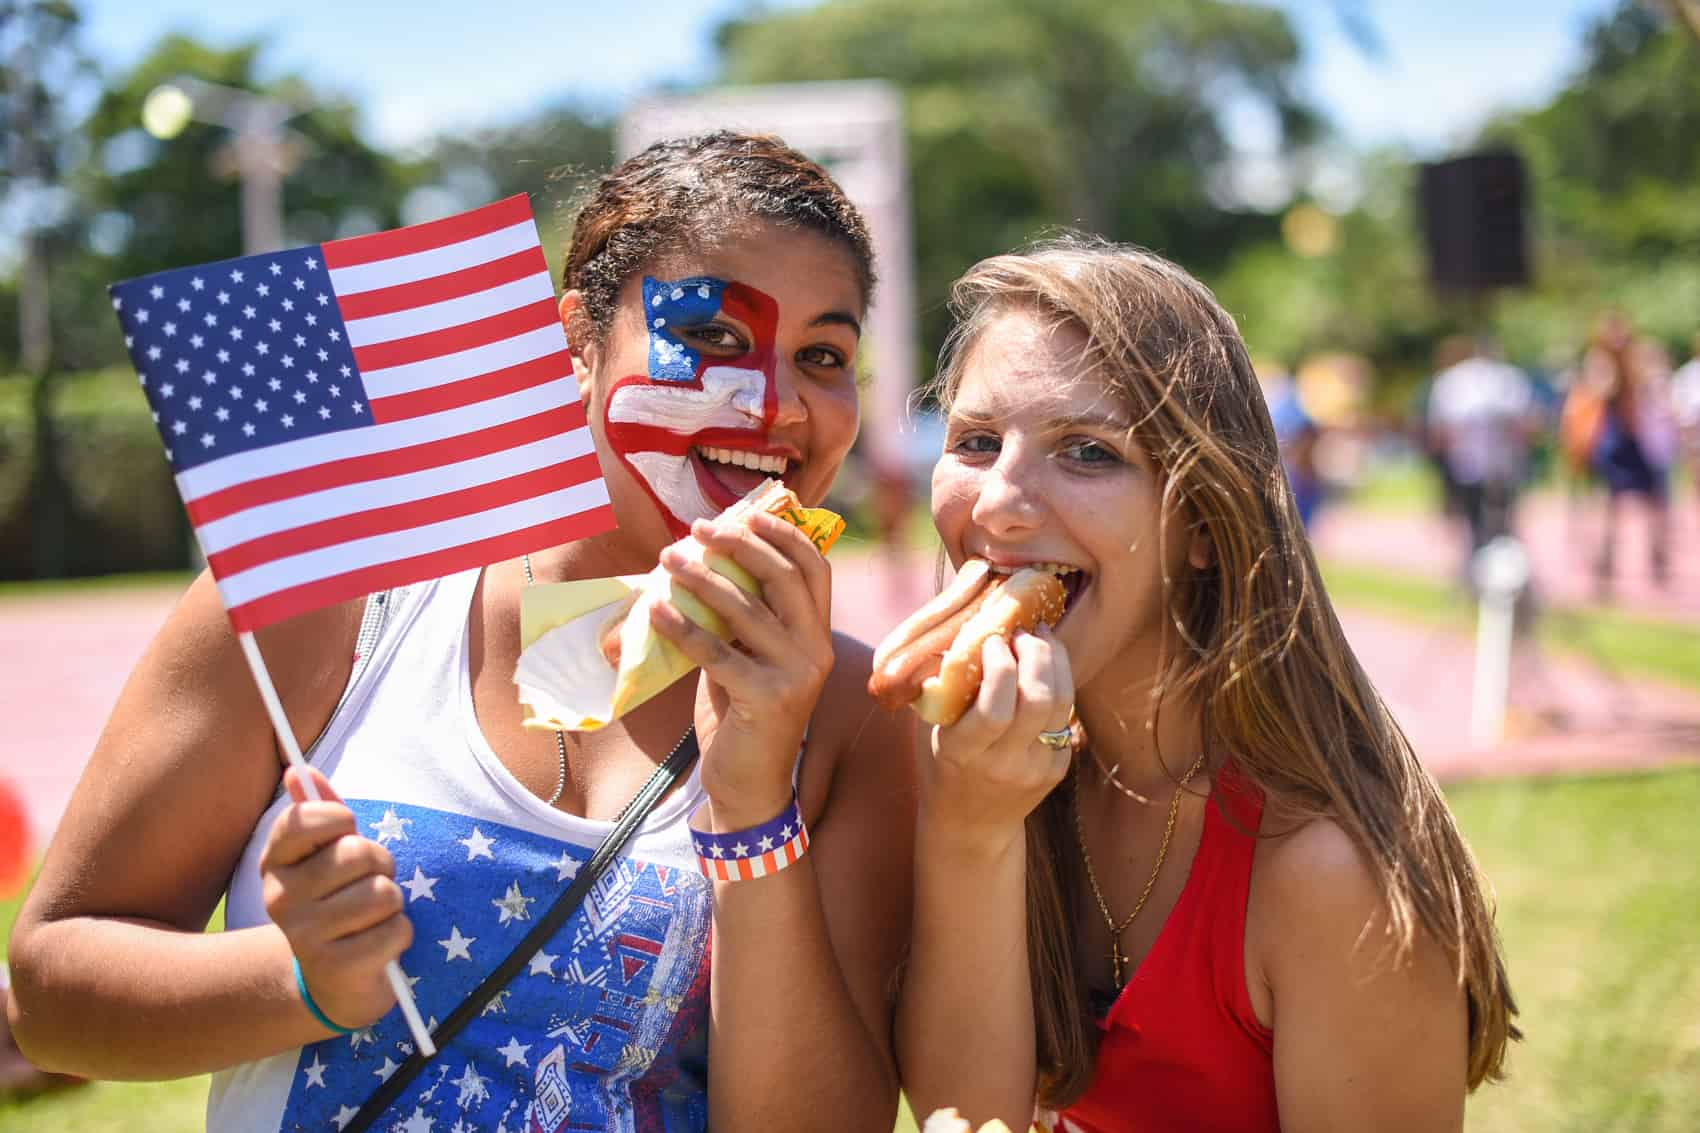 Attendants enjoyed Nathan's hot dogs and other traditional food at the 4th of July picnic at Cervecería Costa Rica on Saturday.